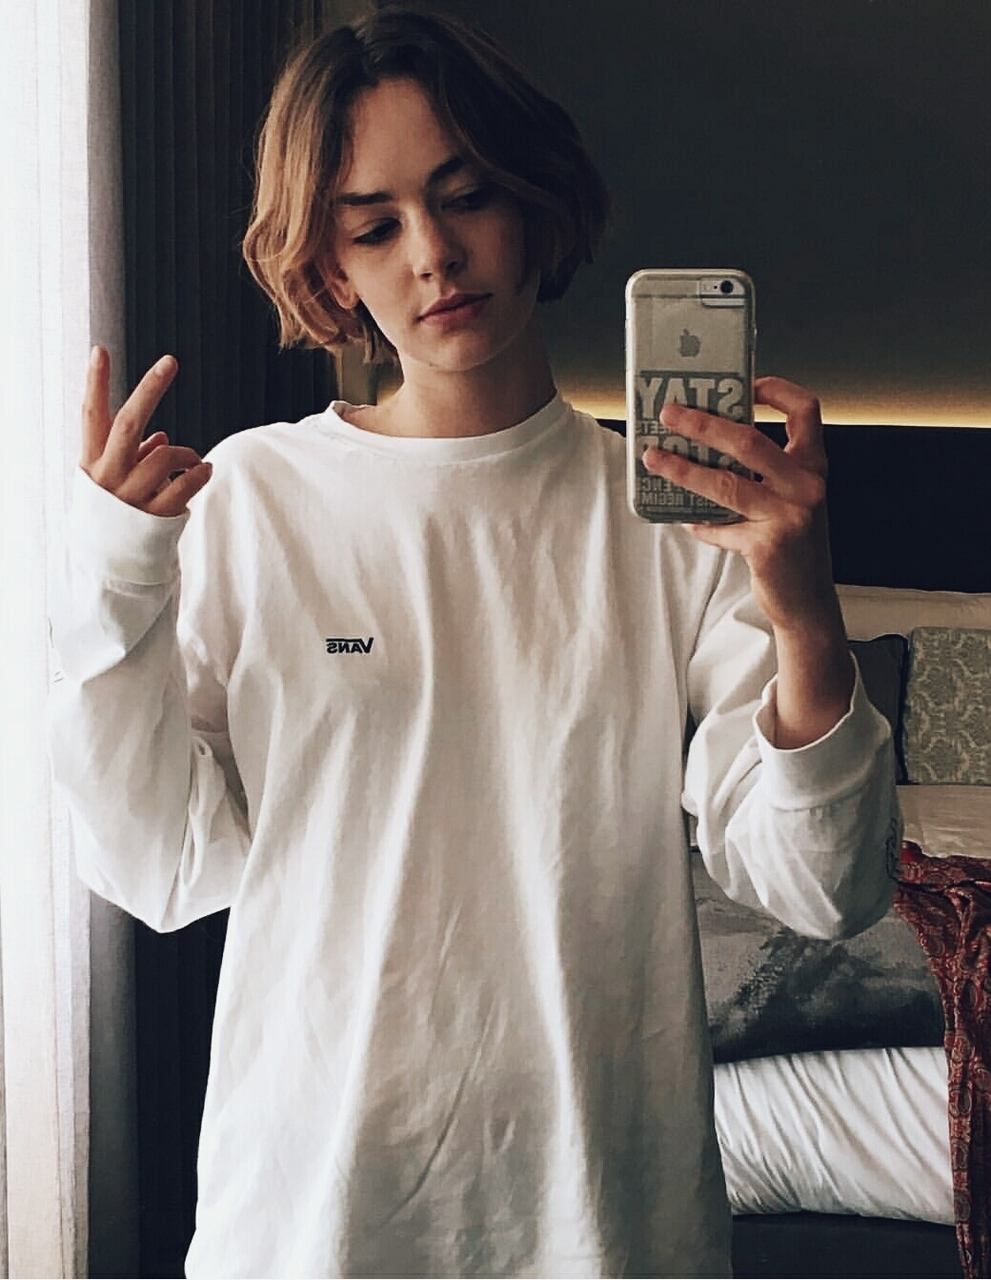 Hot Selfie Brigette Lundy-Paine naked photo 2017